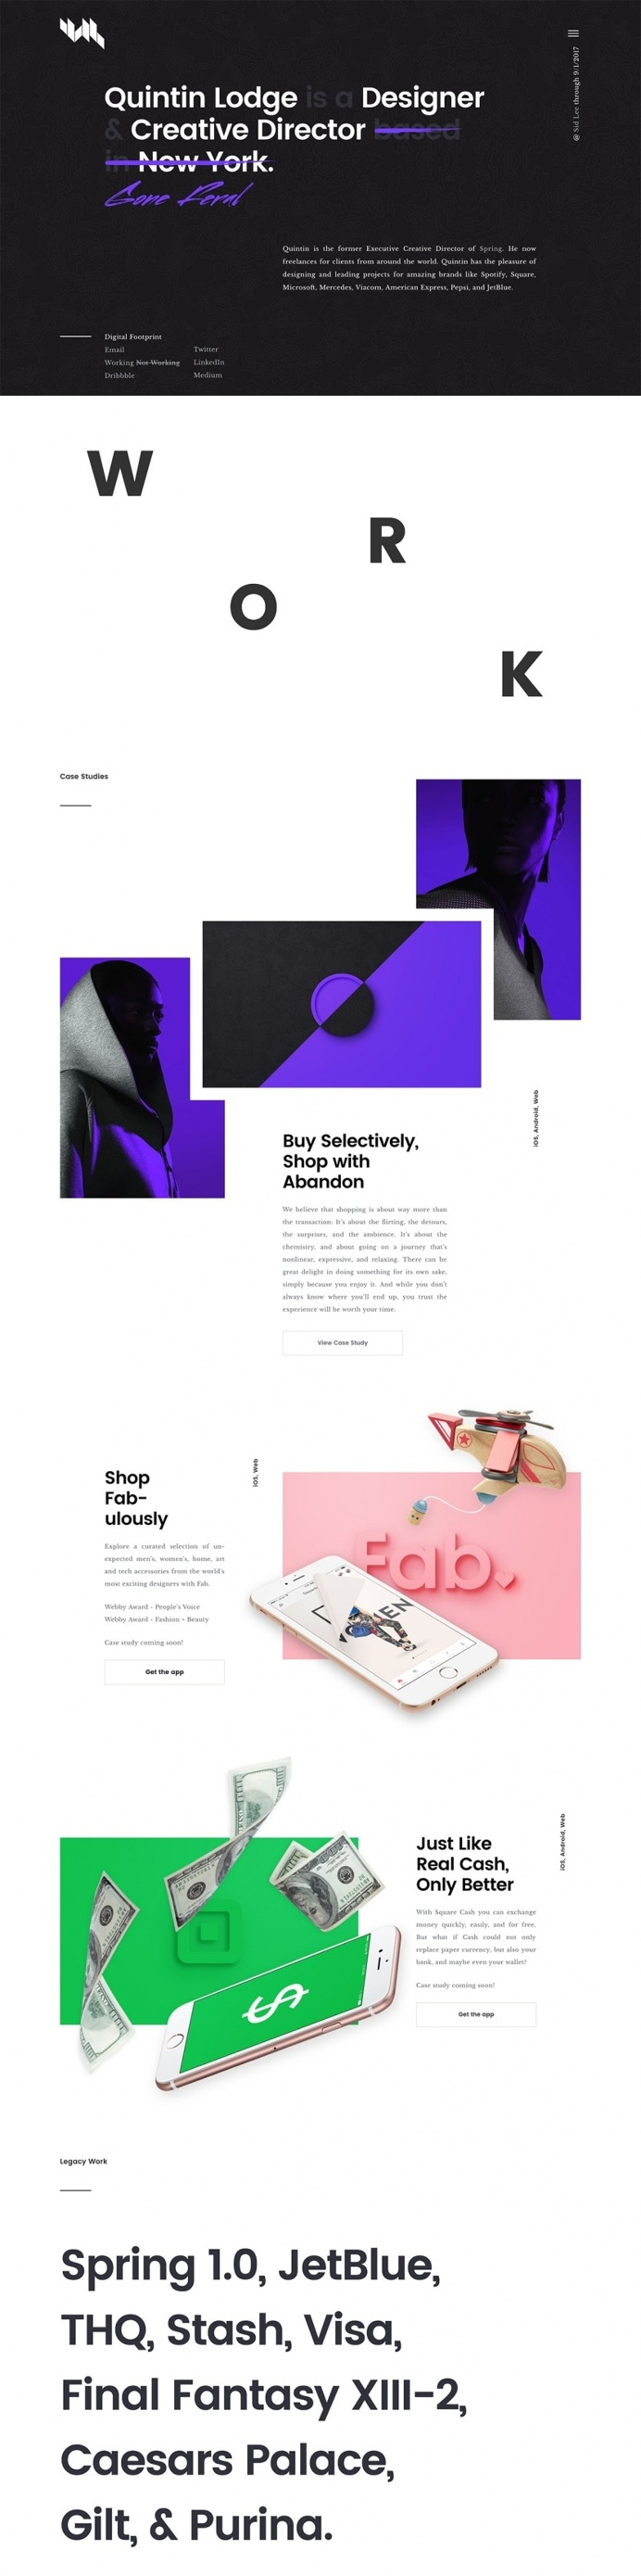 Quintin Lodge - Mindsparkle Mag - Quintin is the former Executive Creative Director of Spring. He now freelances for clients from around the